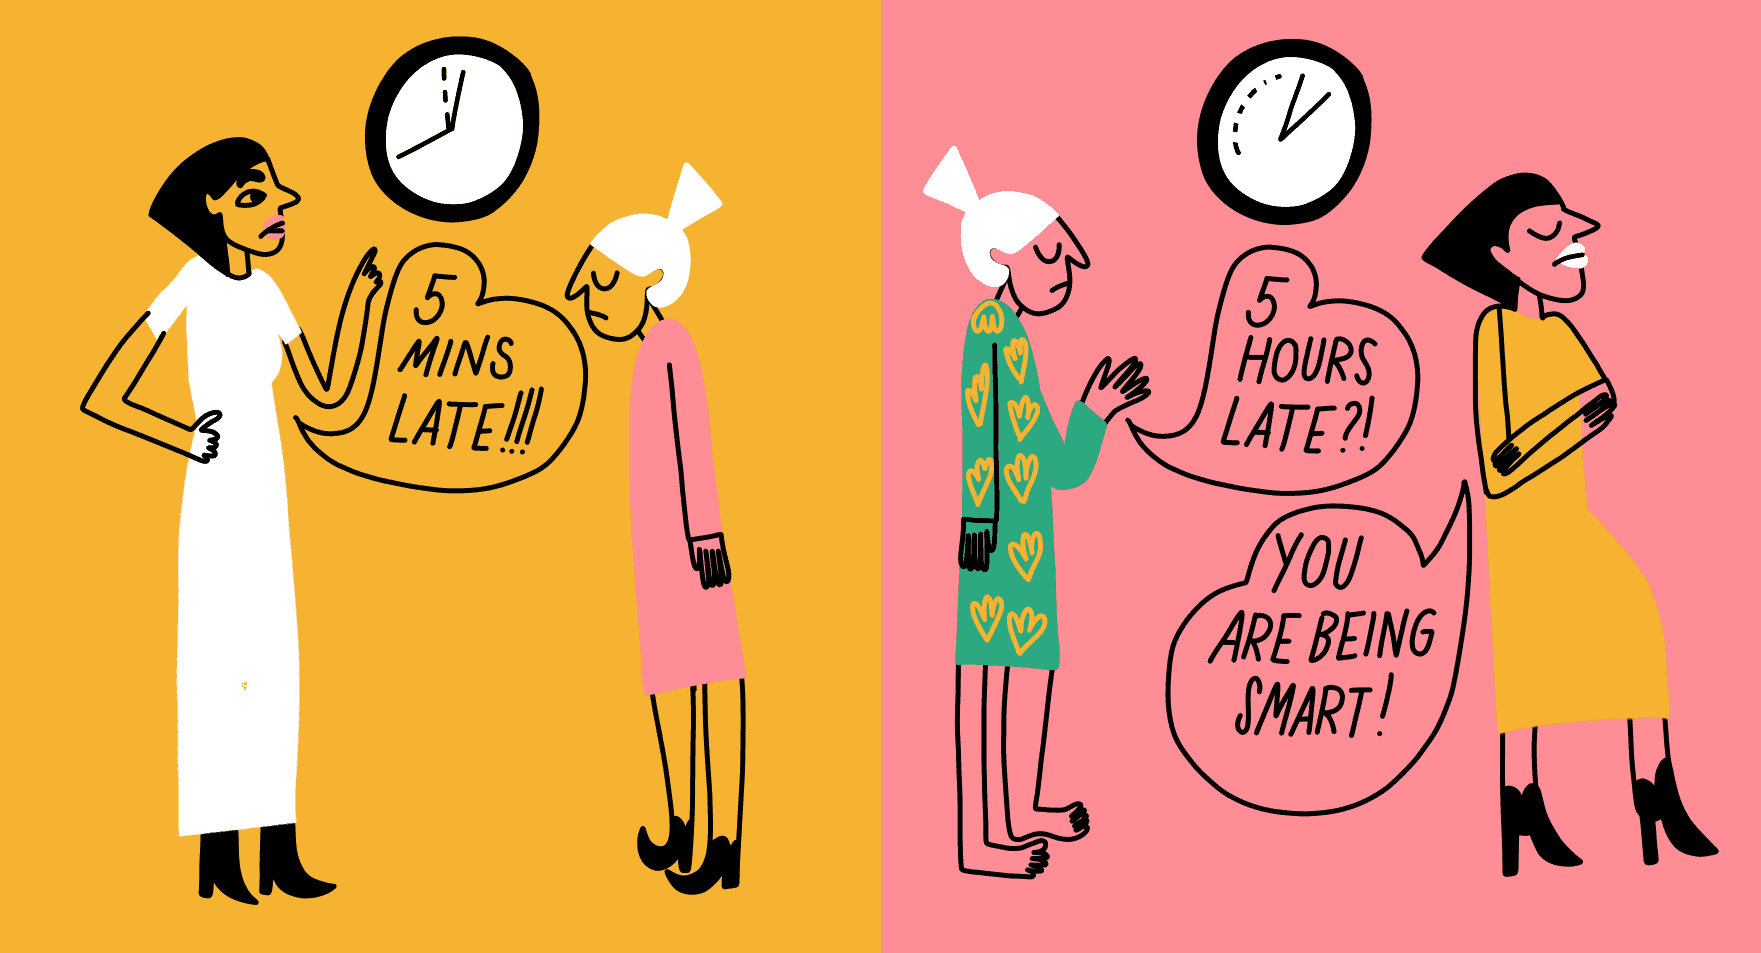 A hypocritical mother admonishing her daughter for being 5 minutes late, but then being 5 hours late herself on another occasion.